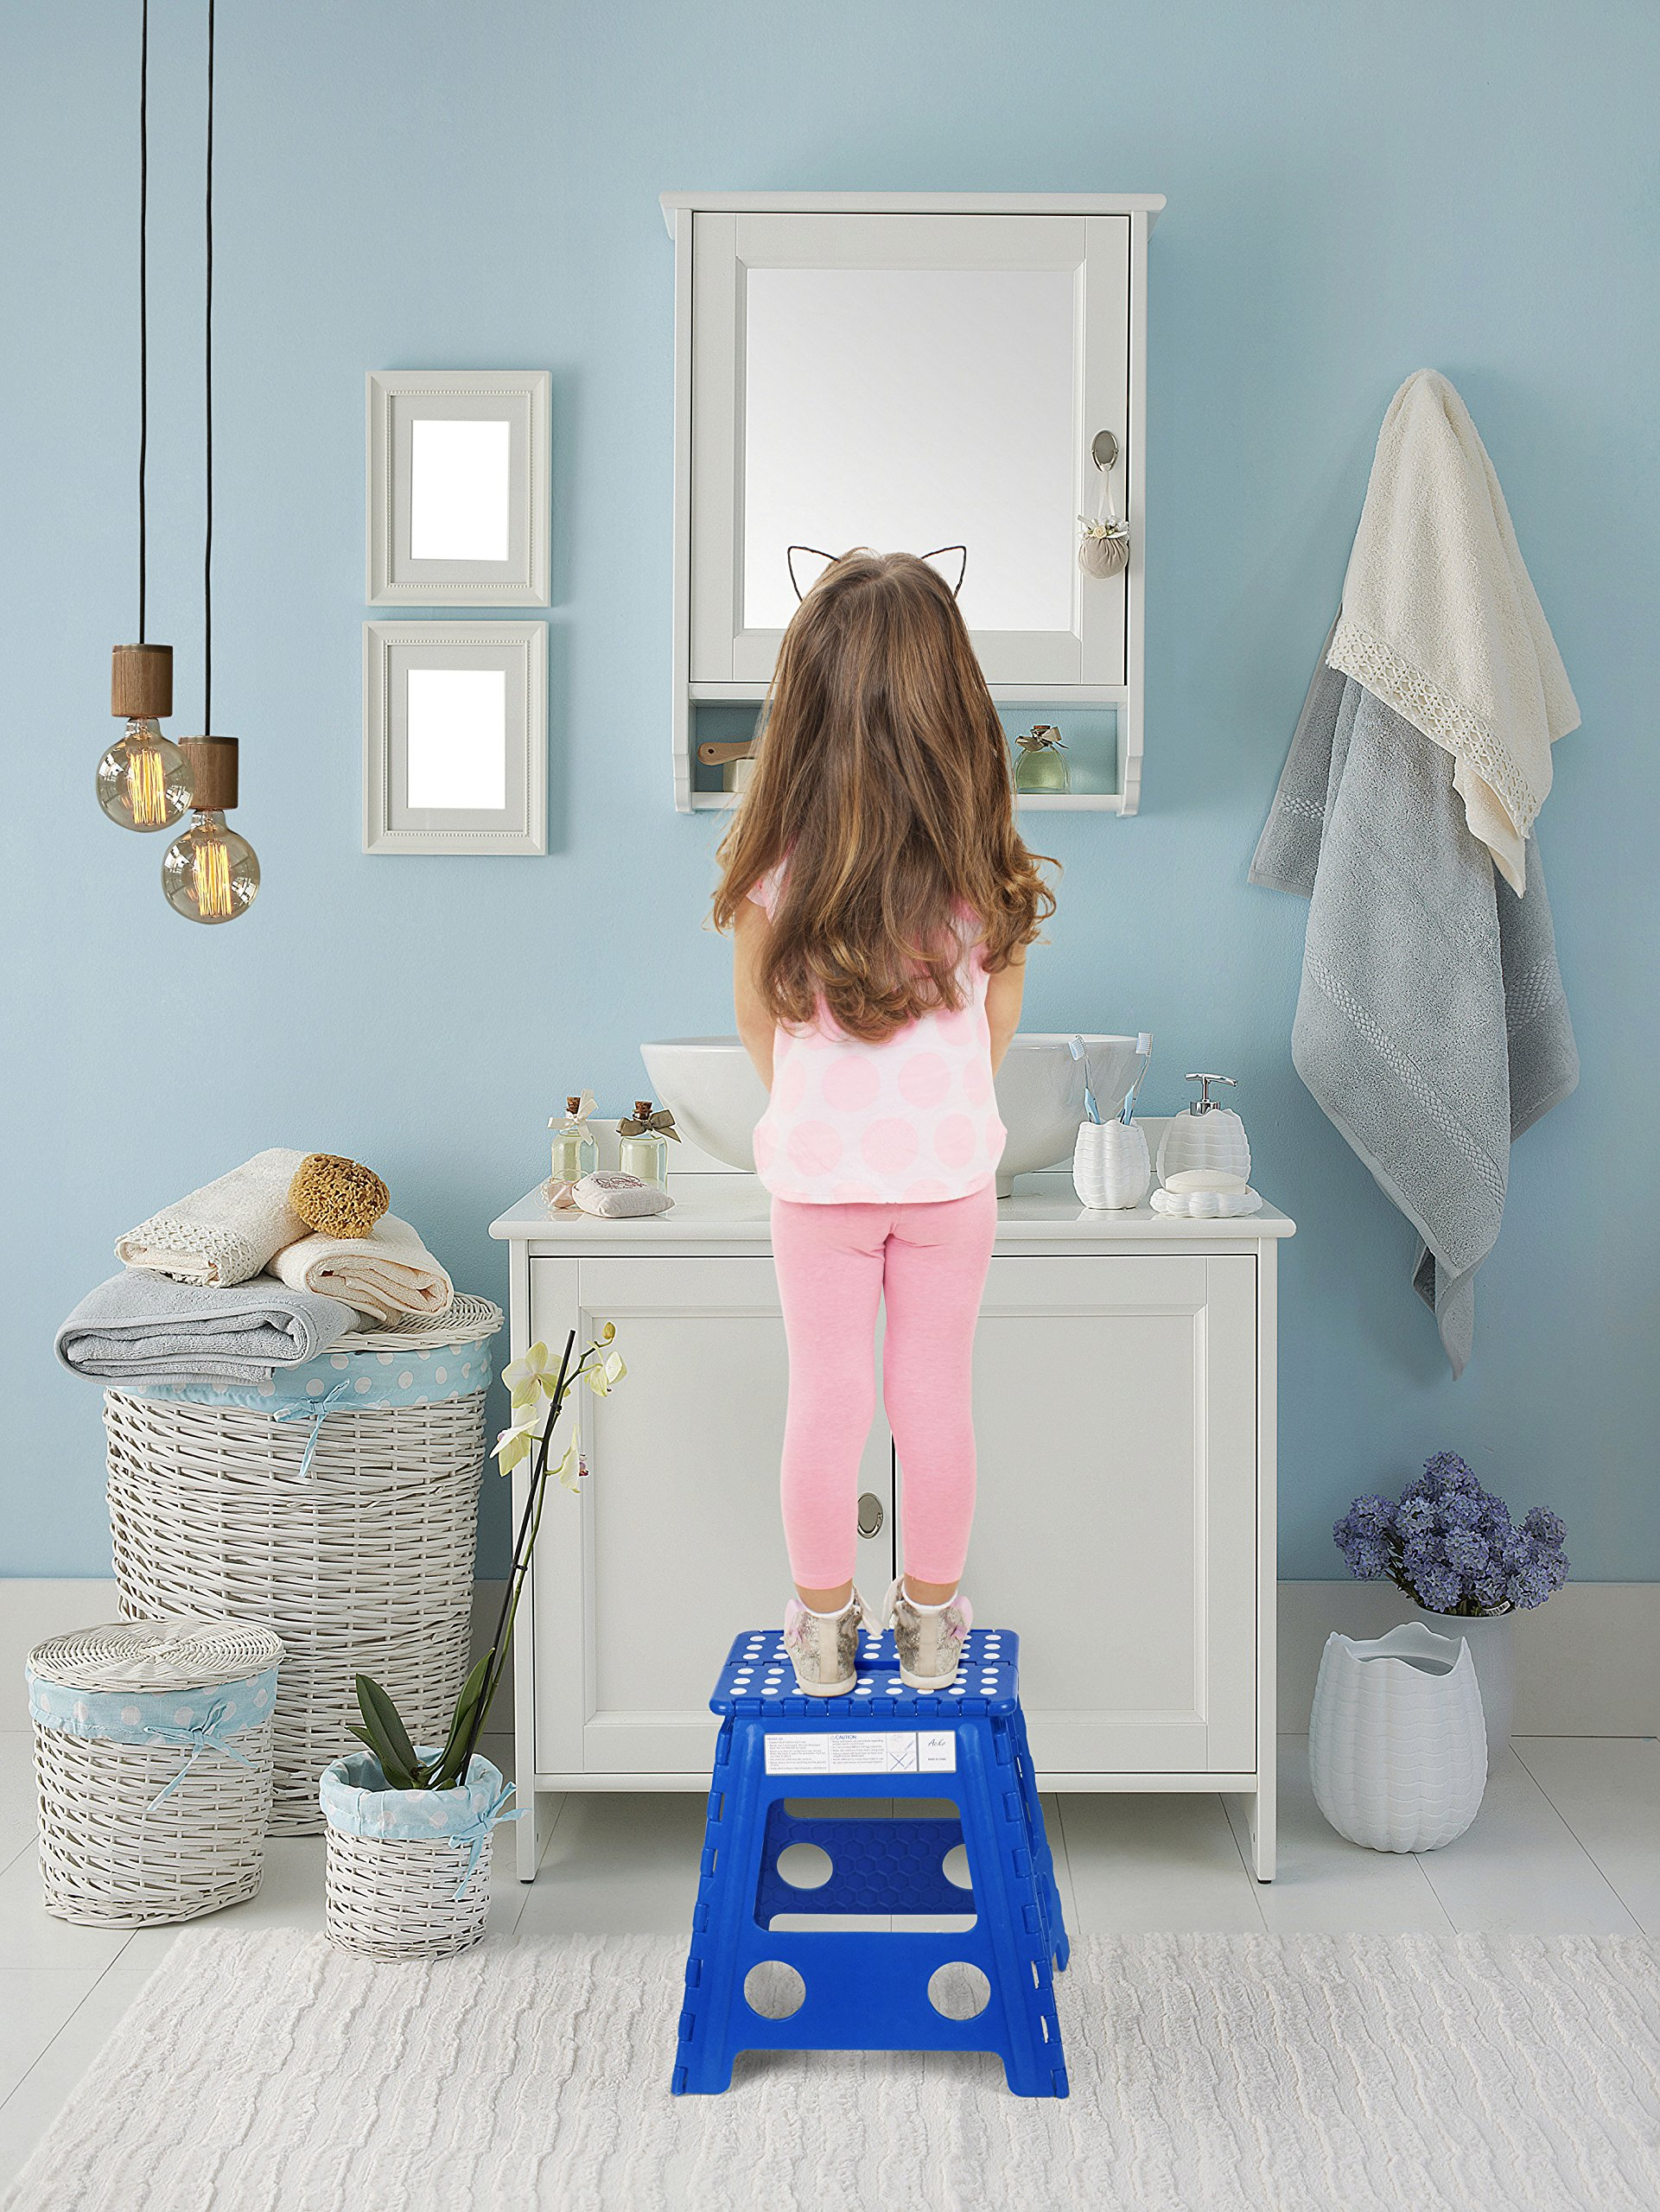 Acko 16 Inch Super Strong Folding Step Stool for Adults and Kids Kitchen Garden Usage Blue by Acko (Image #4)